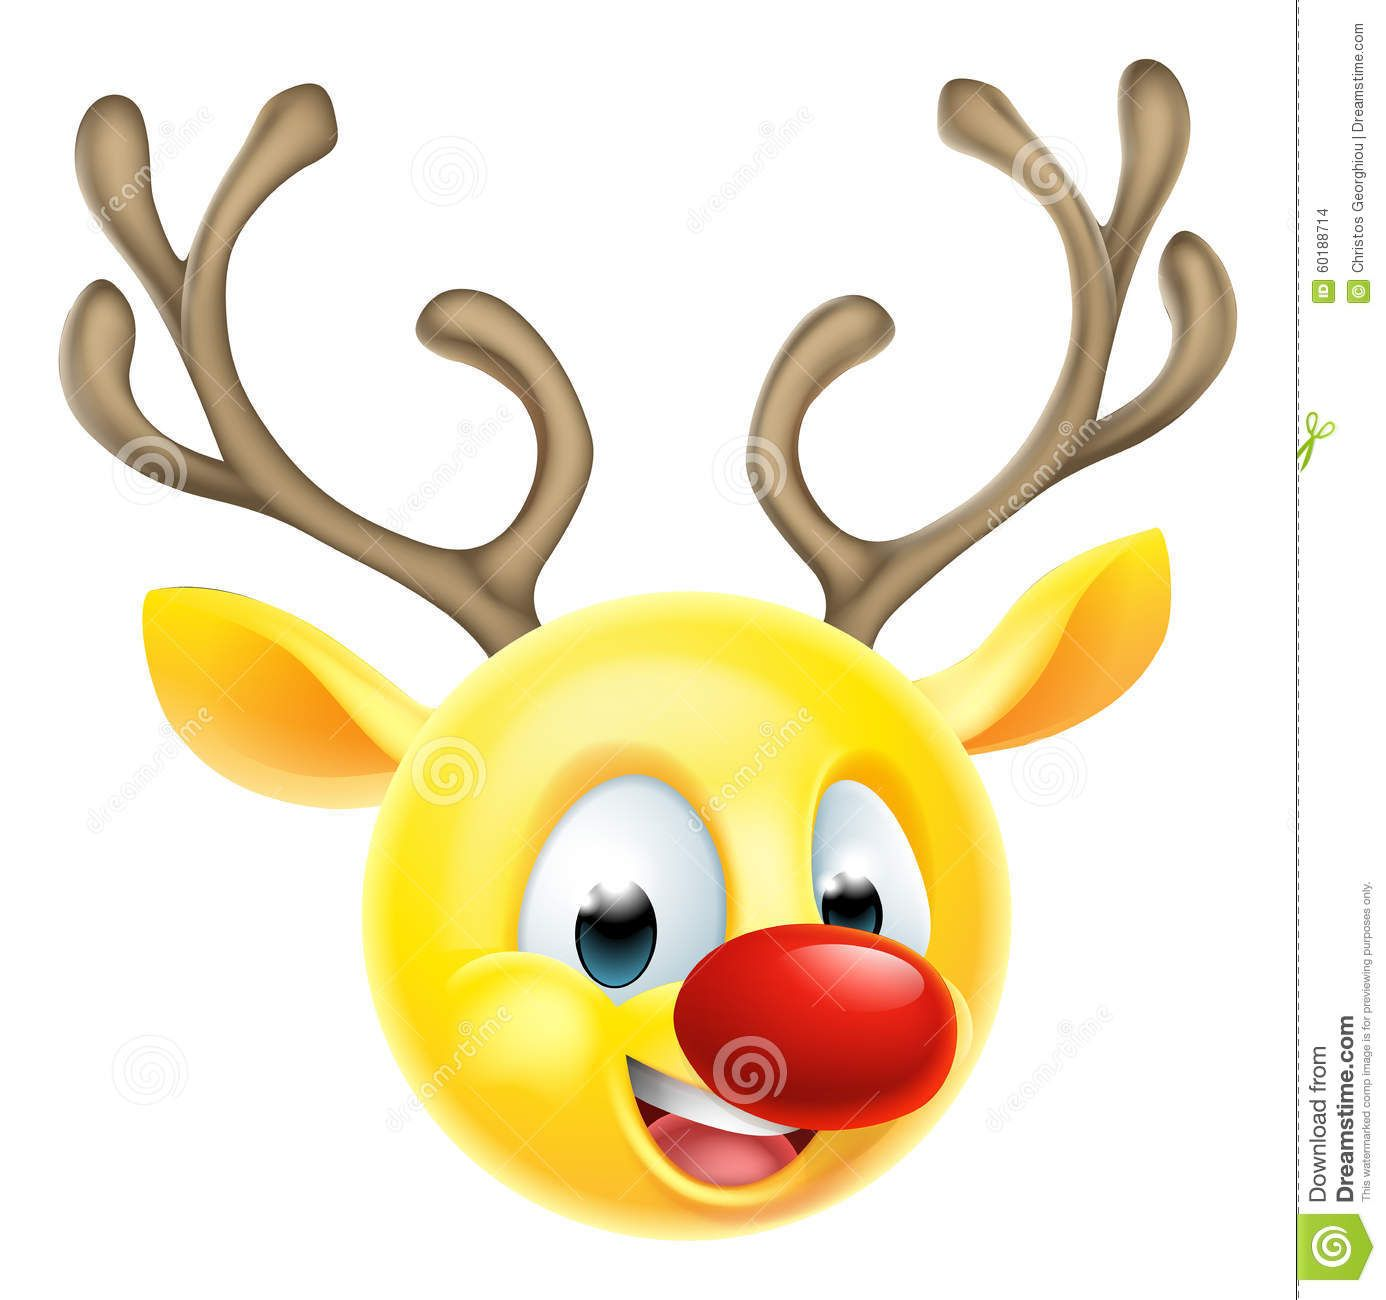 Christmas Reindeer Emoticon Emoji Emoji Christmas Emoticon Emoji